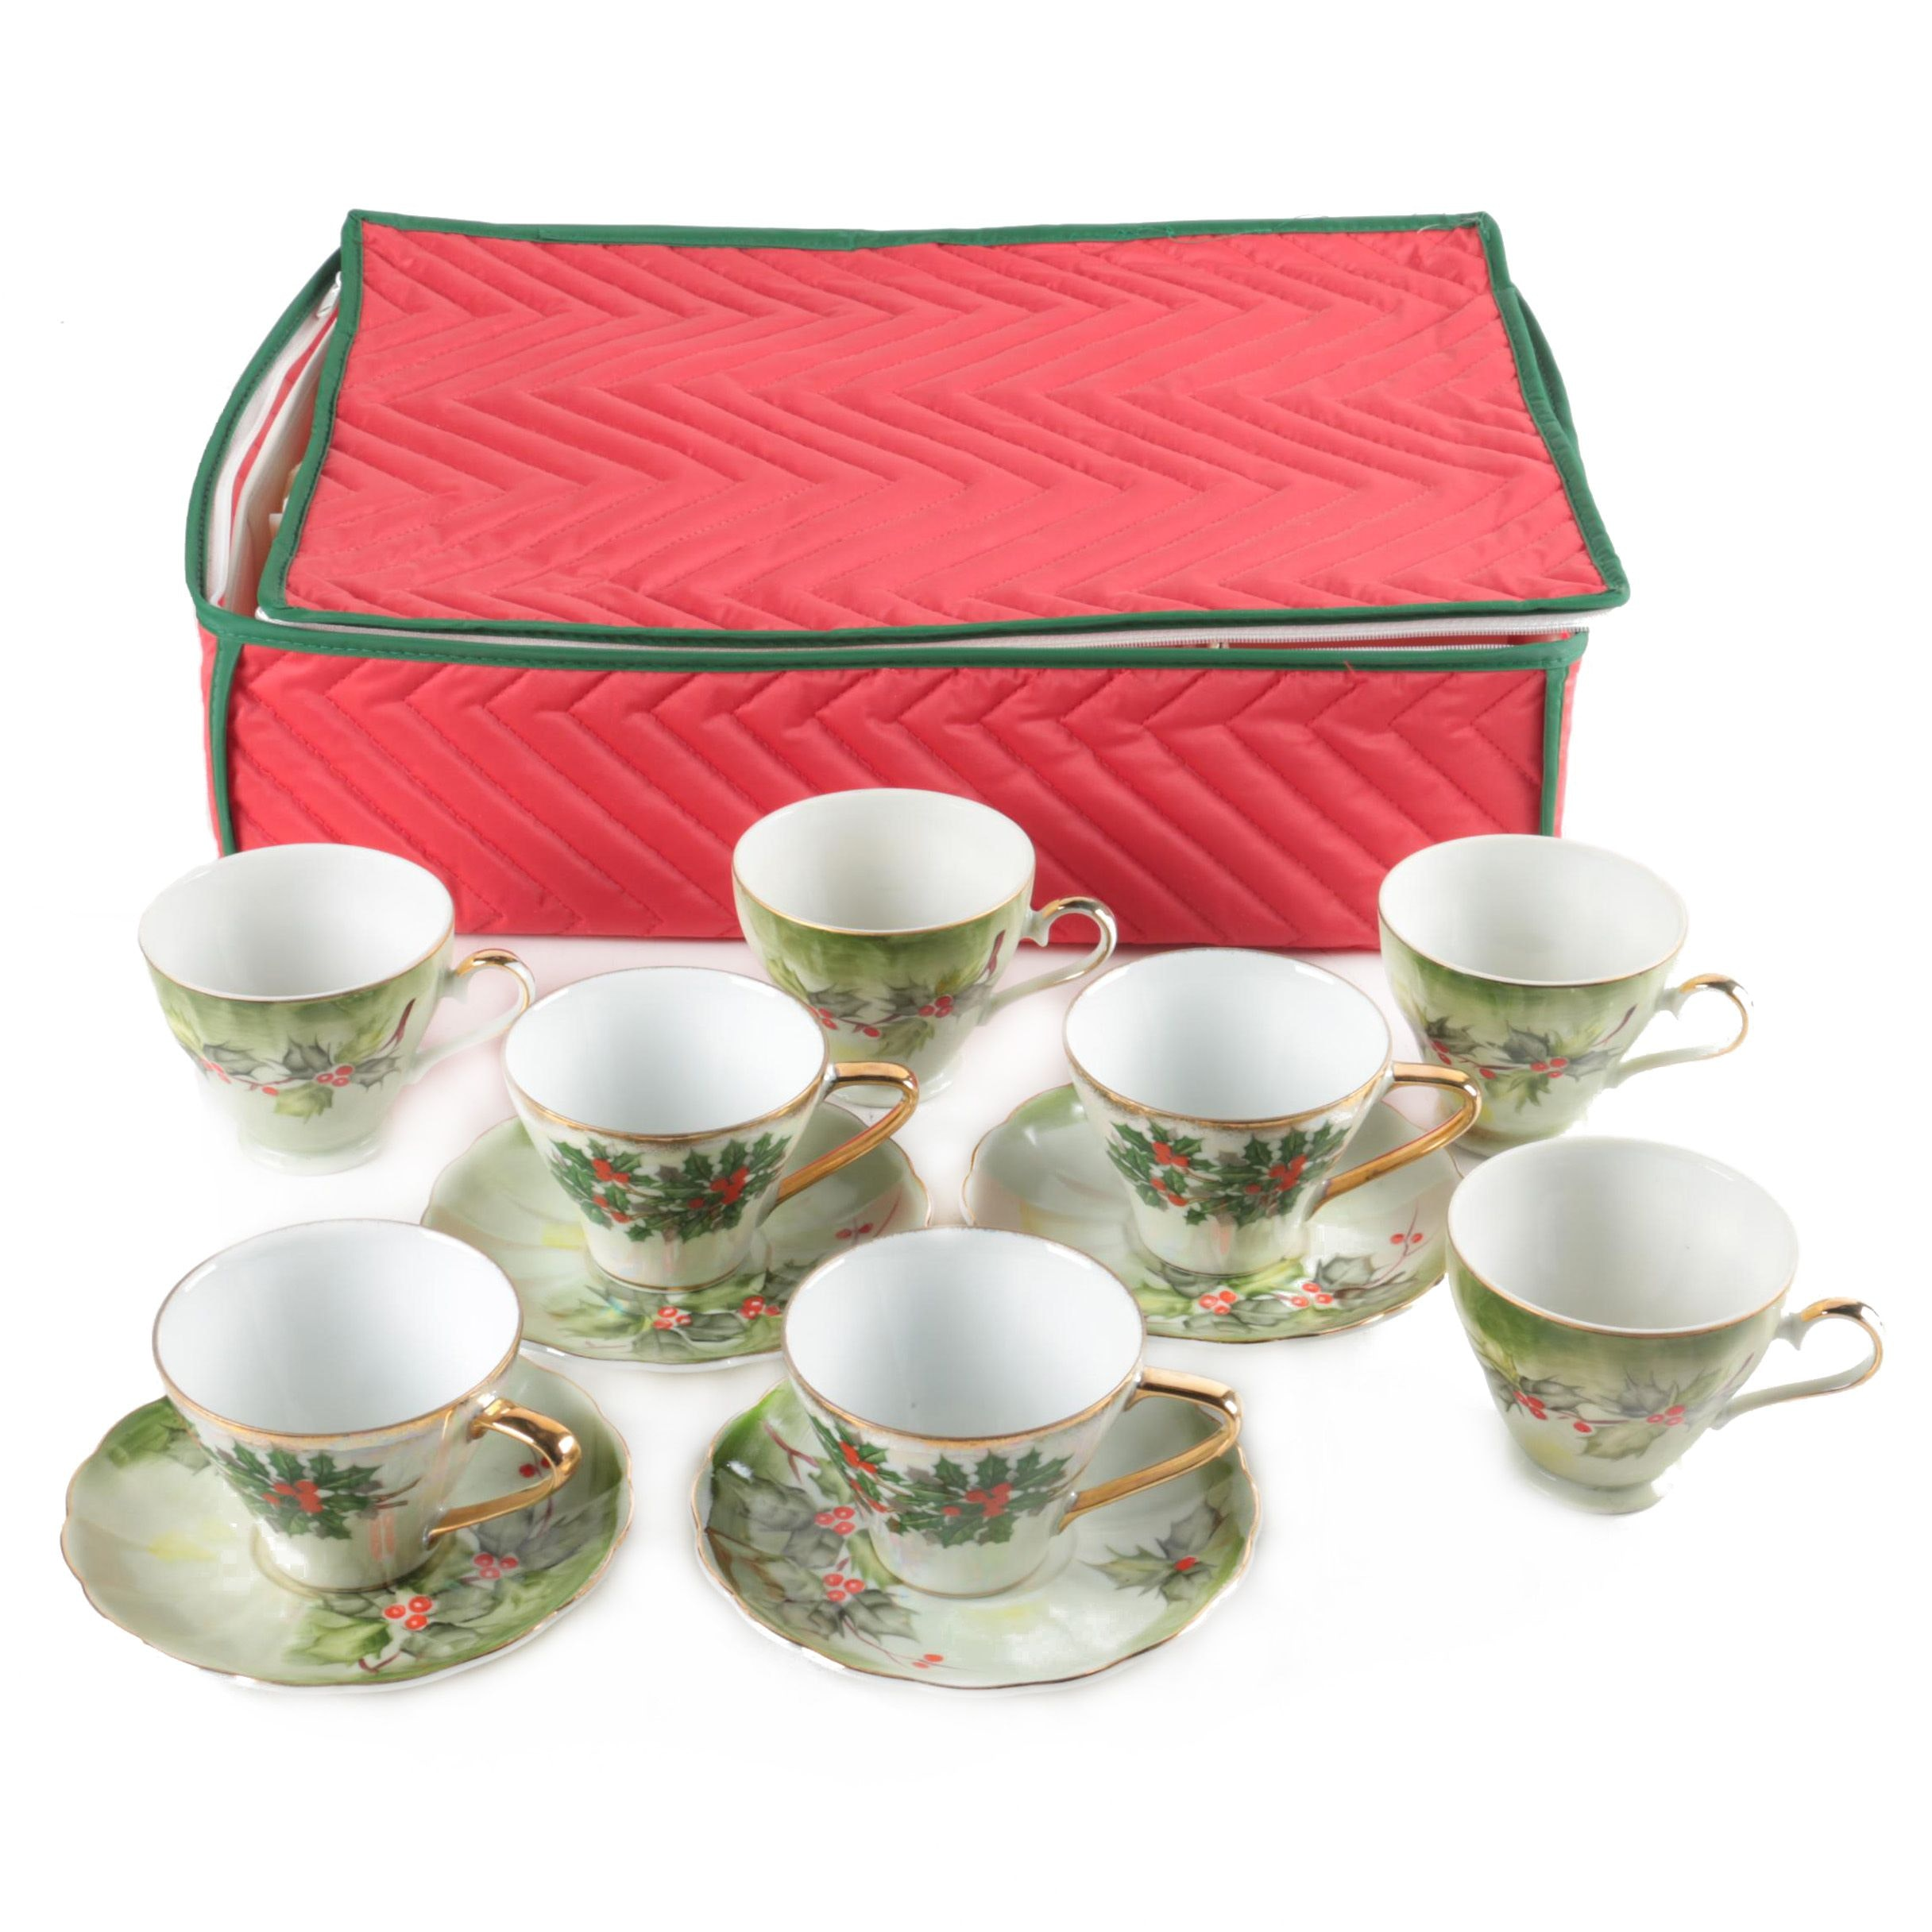 Vintage Christmas Cups and Saucers with Gilded Trim